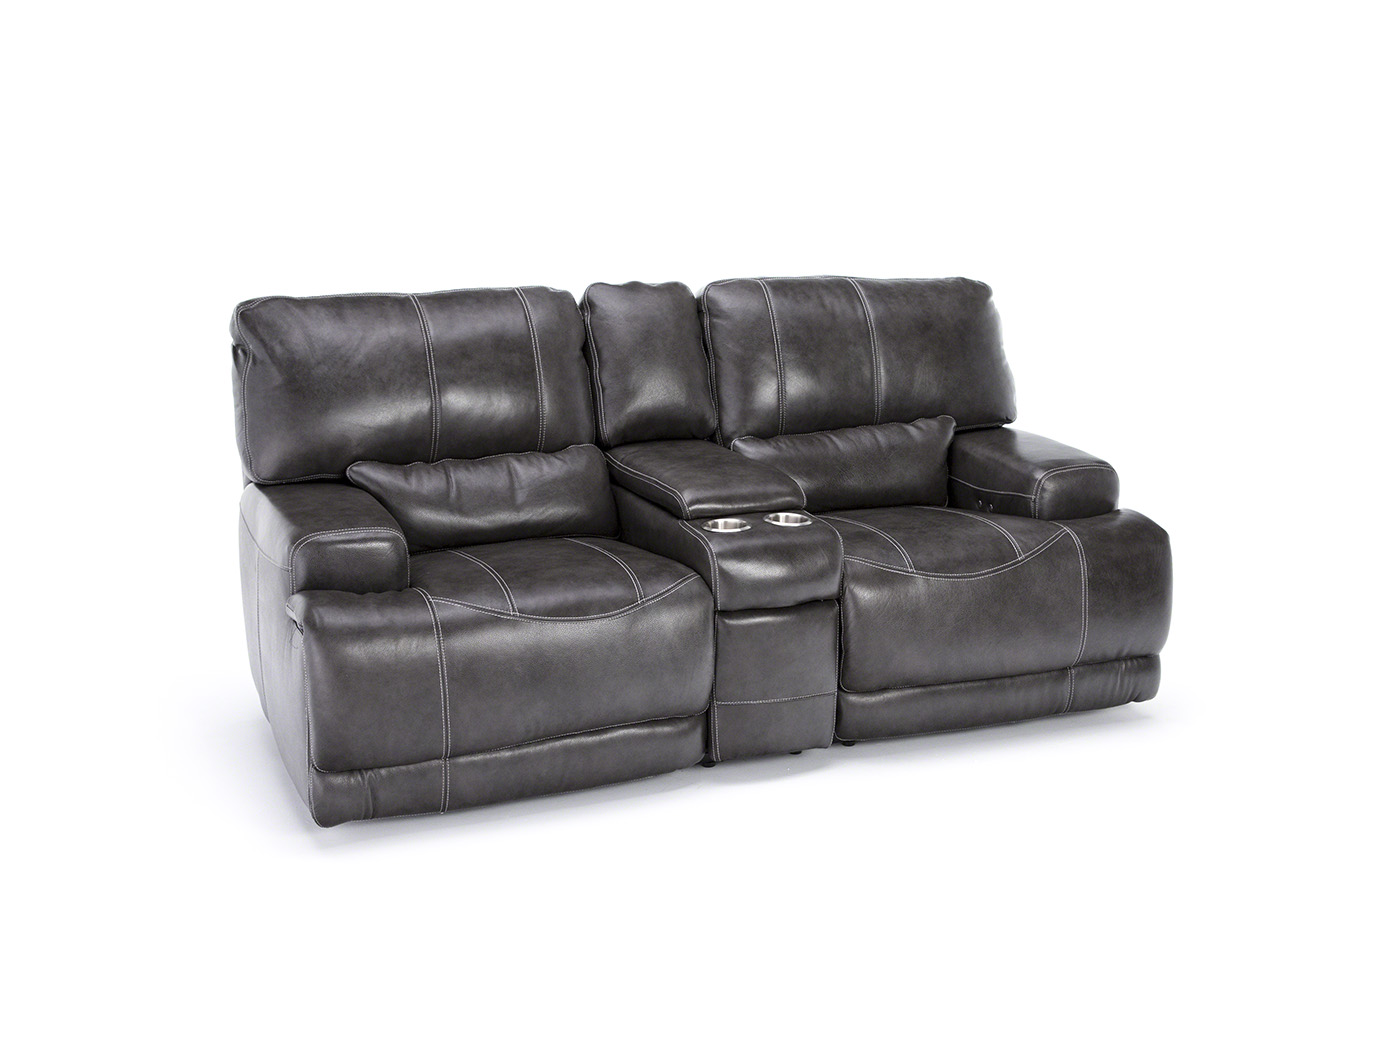 Placier Leather Power Reclining Console Loveseat